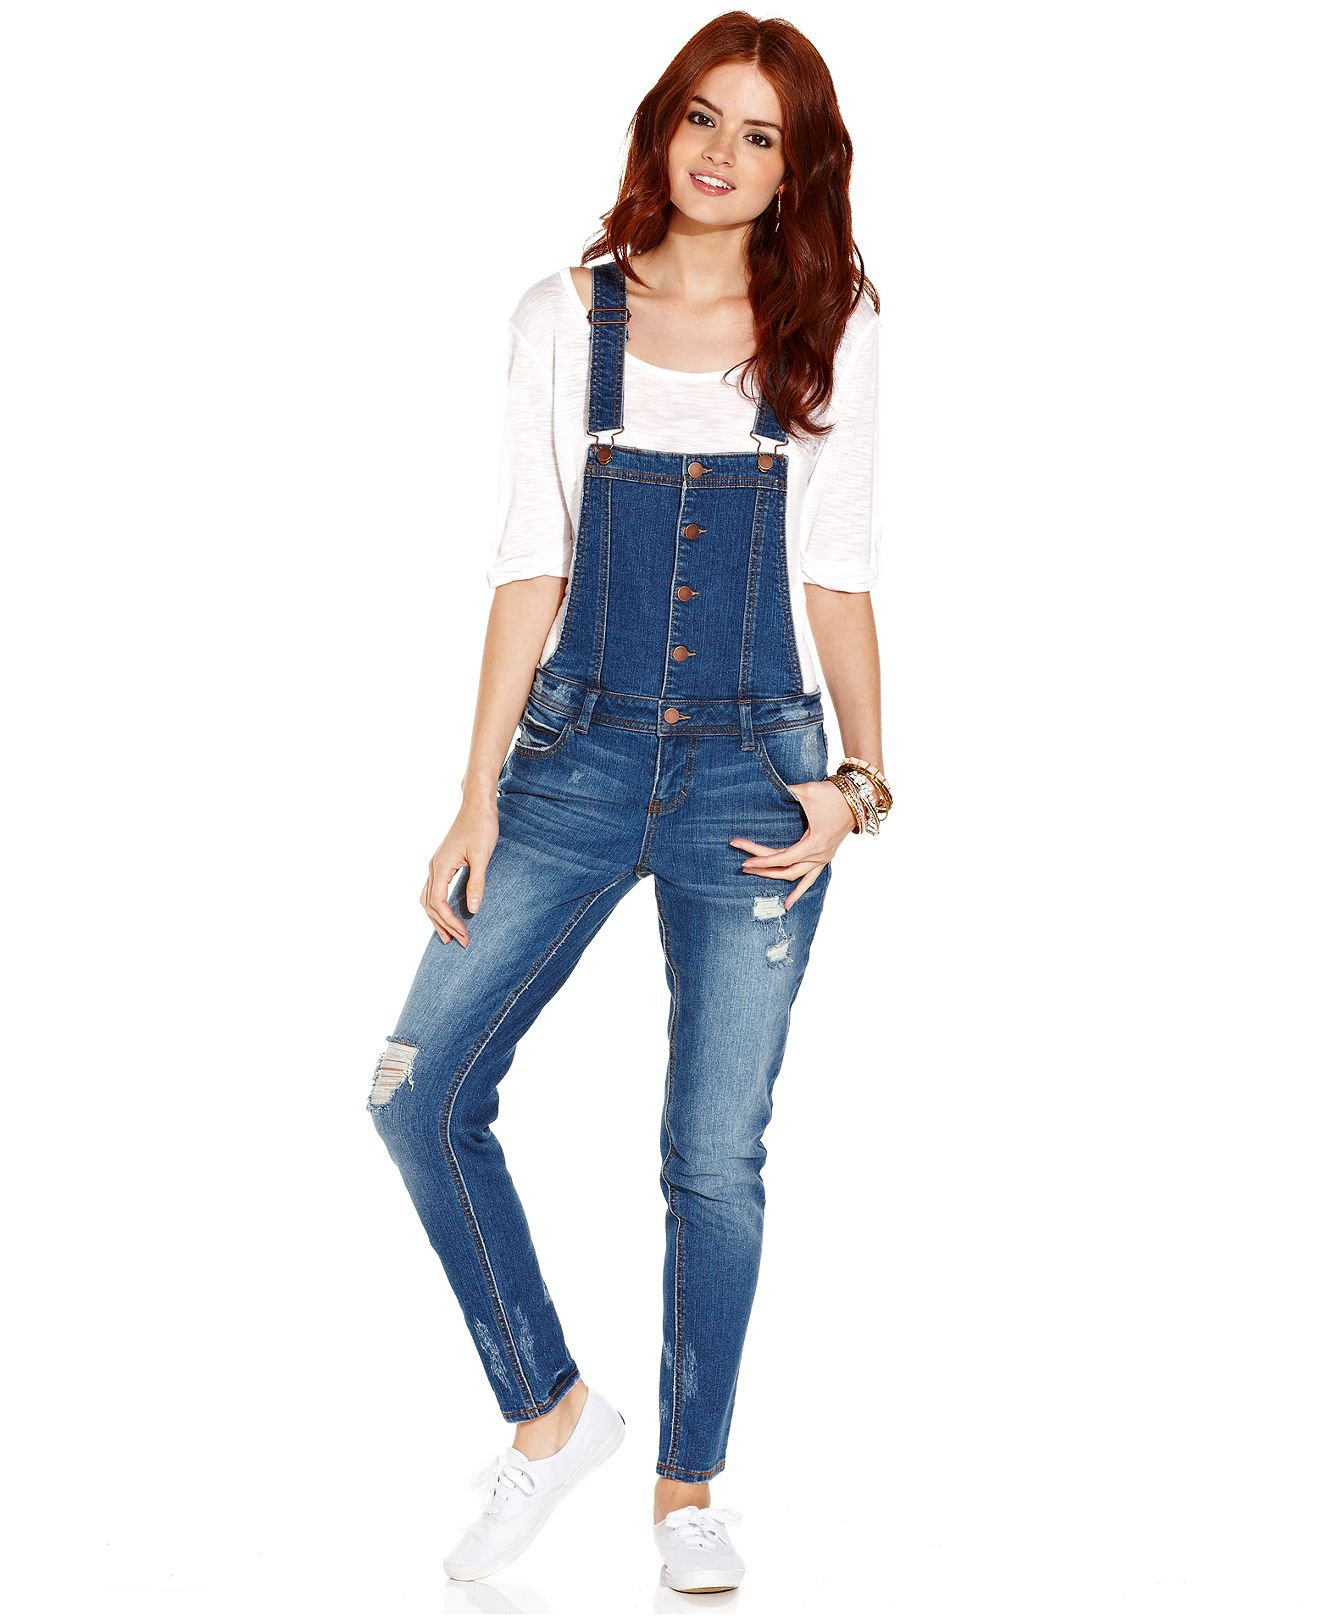 Tinseltown Juniors Jeans Skinny From Macys | Jeans